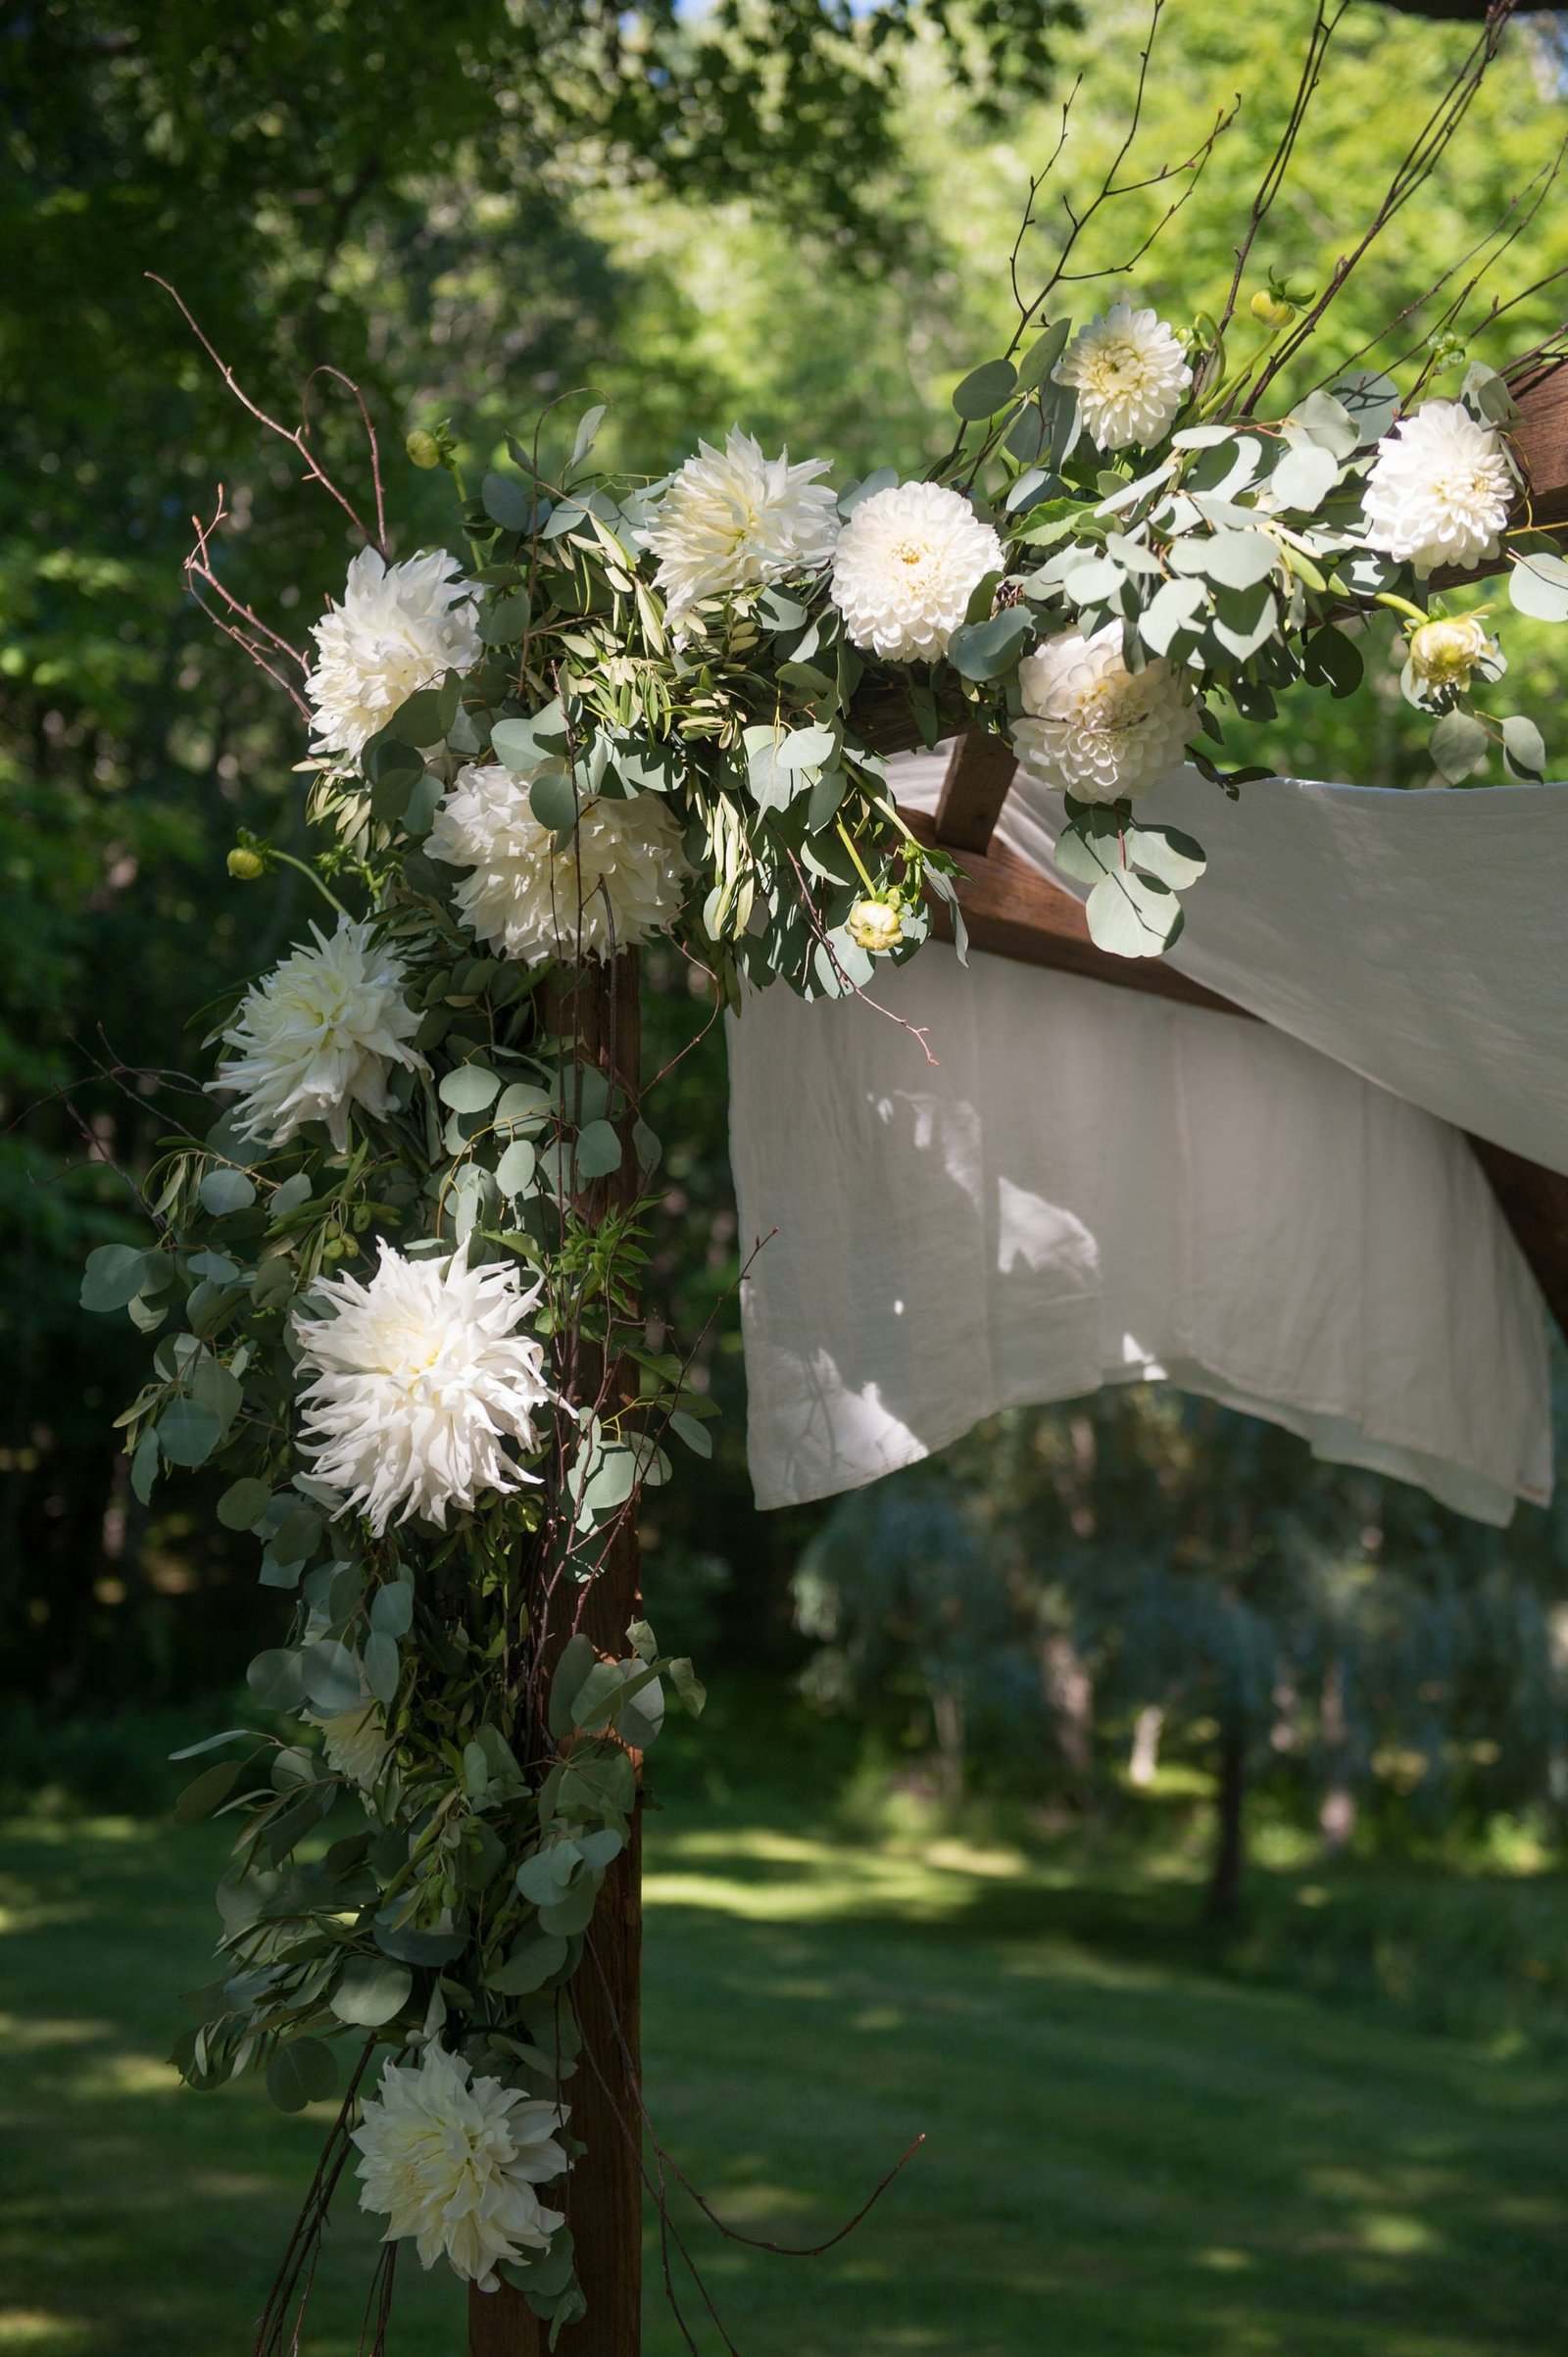 Gorgeous outdoor home wedding ceremony with white chuppah in Washington, CT